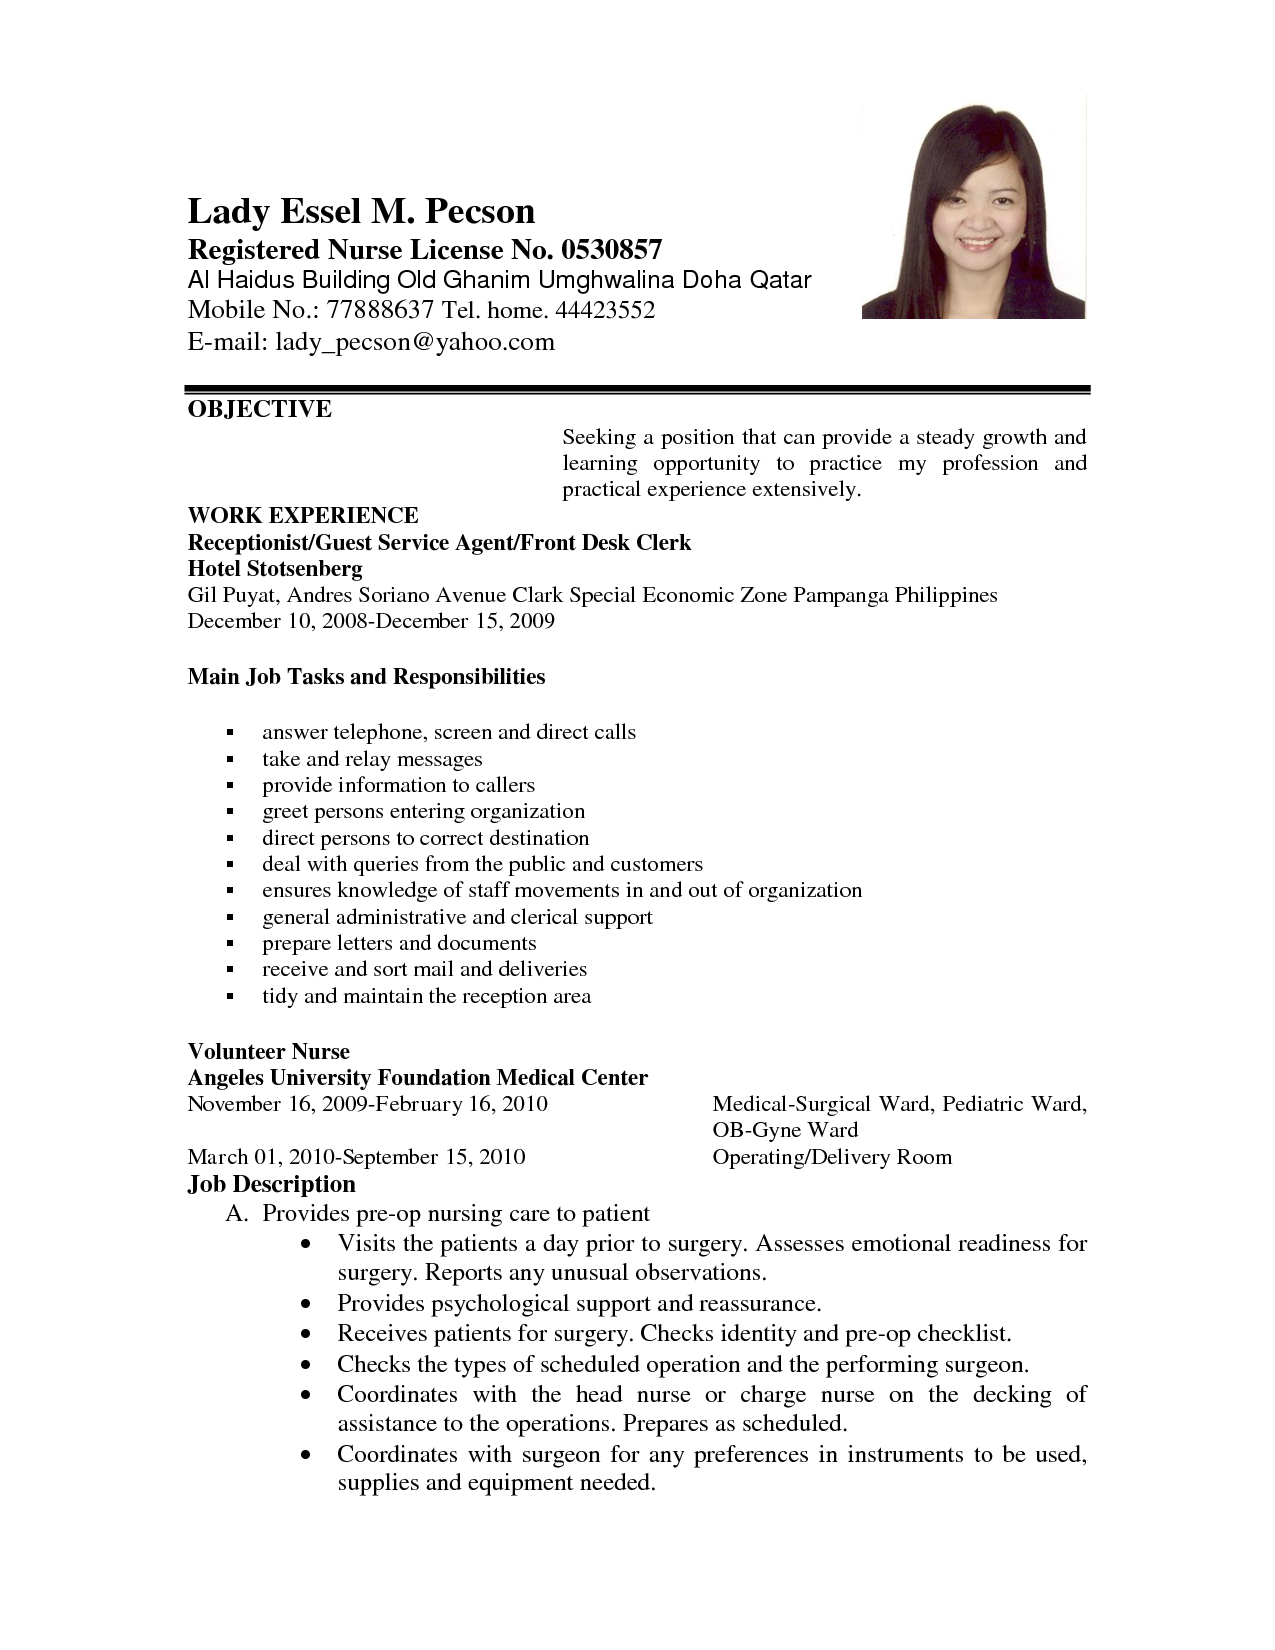 9 blank cover letter template ideas